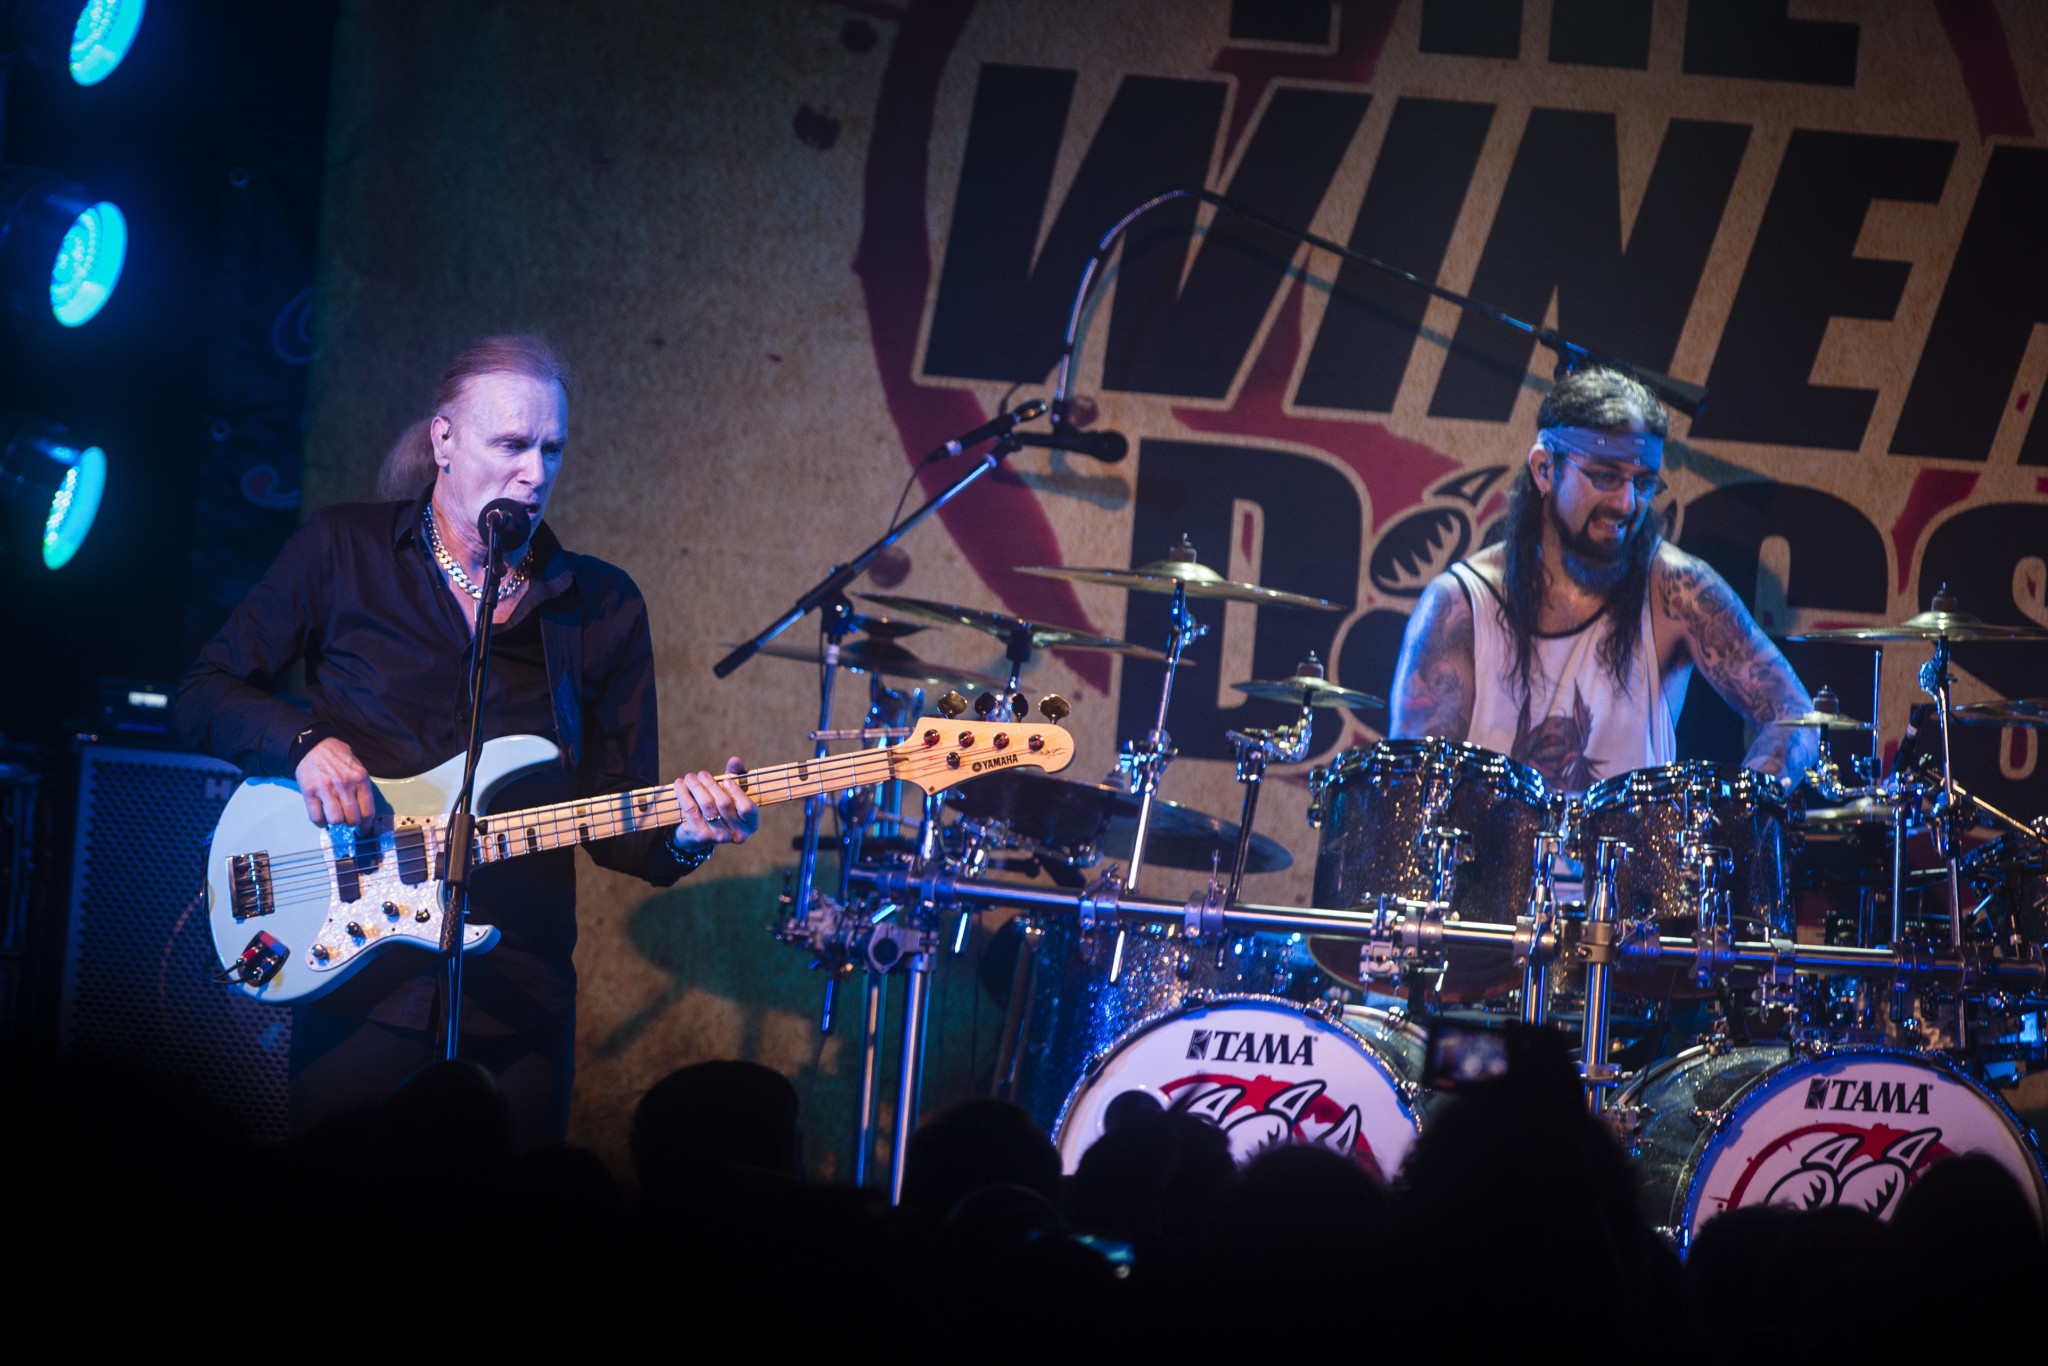 Billy Shean & Mike Portnoy live @ Crossroads